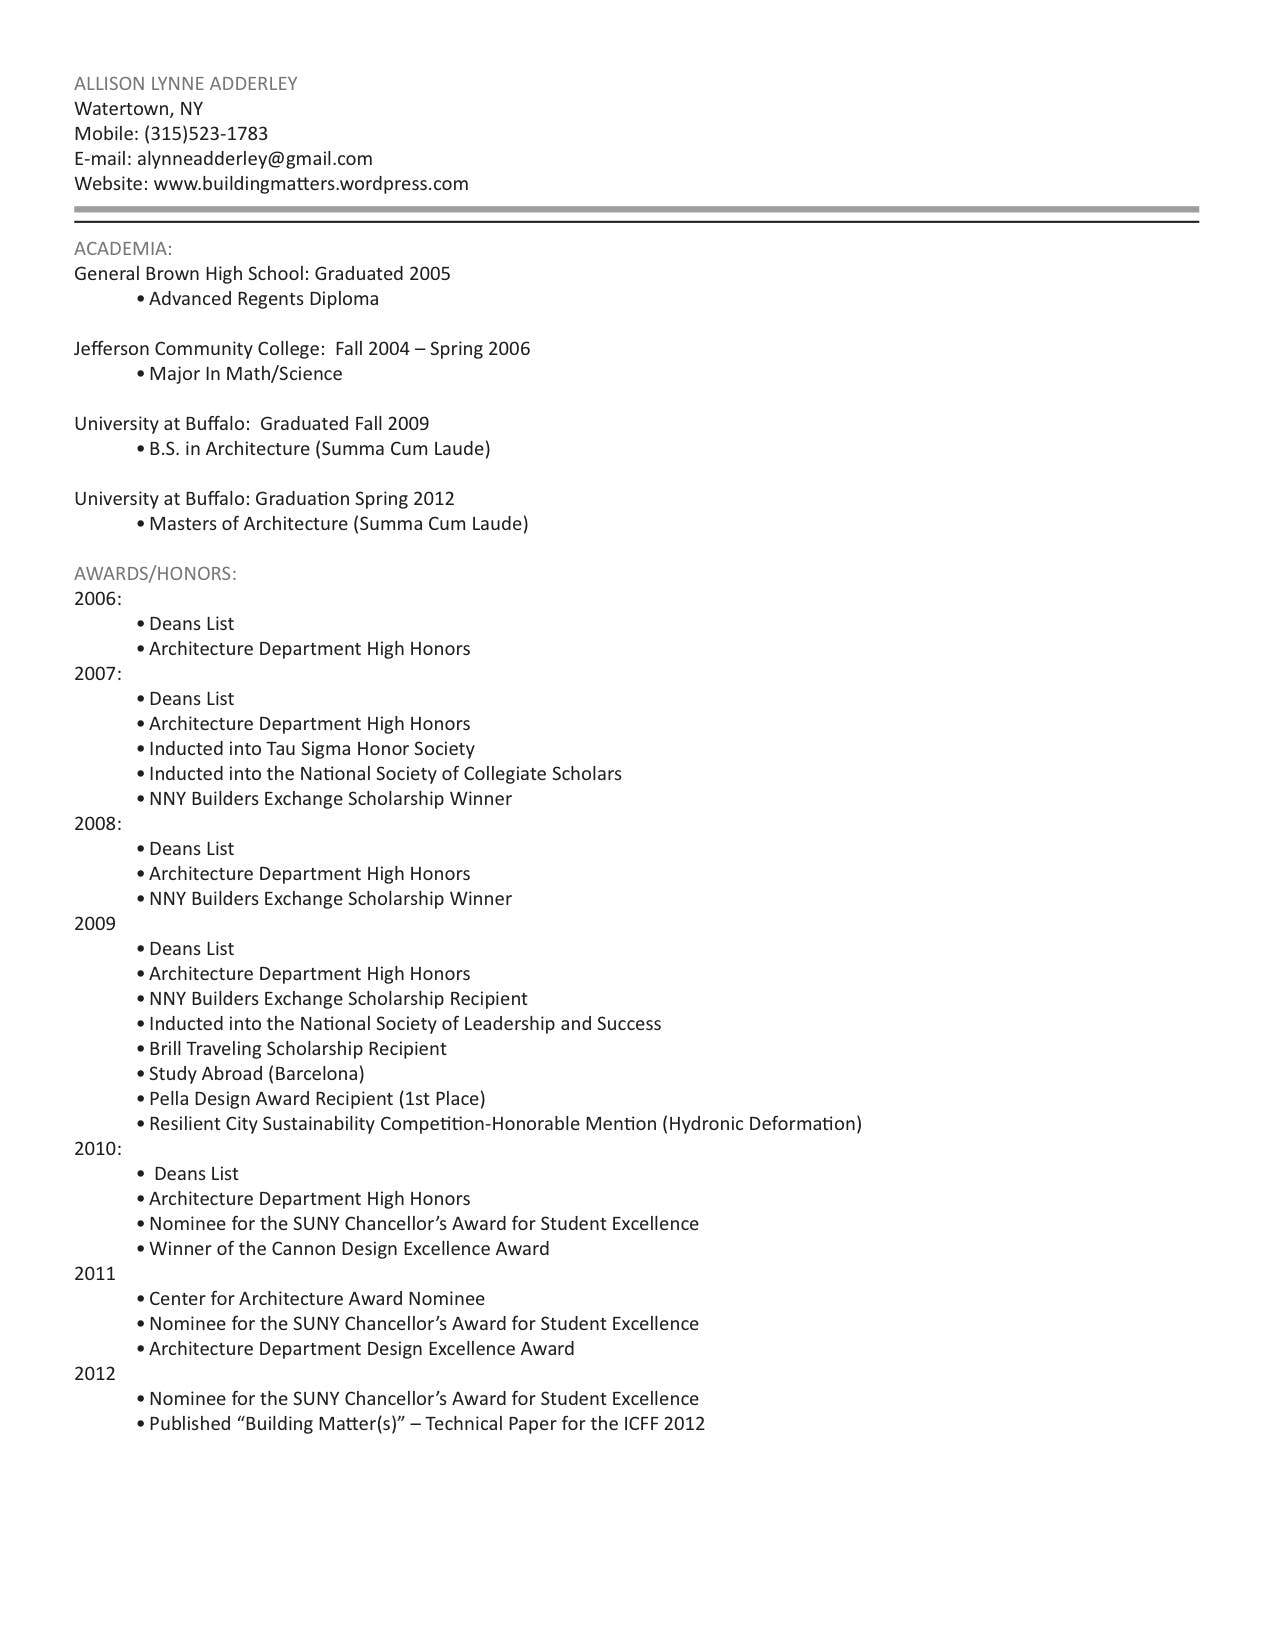 resume National Society Of Leadership And Success Resume resume allison adderley archinect page 1